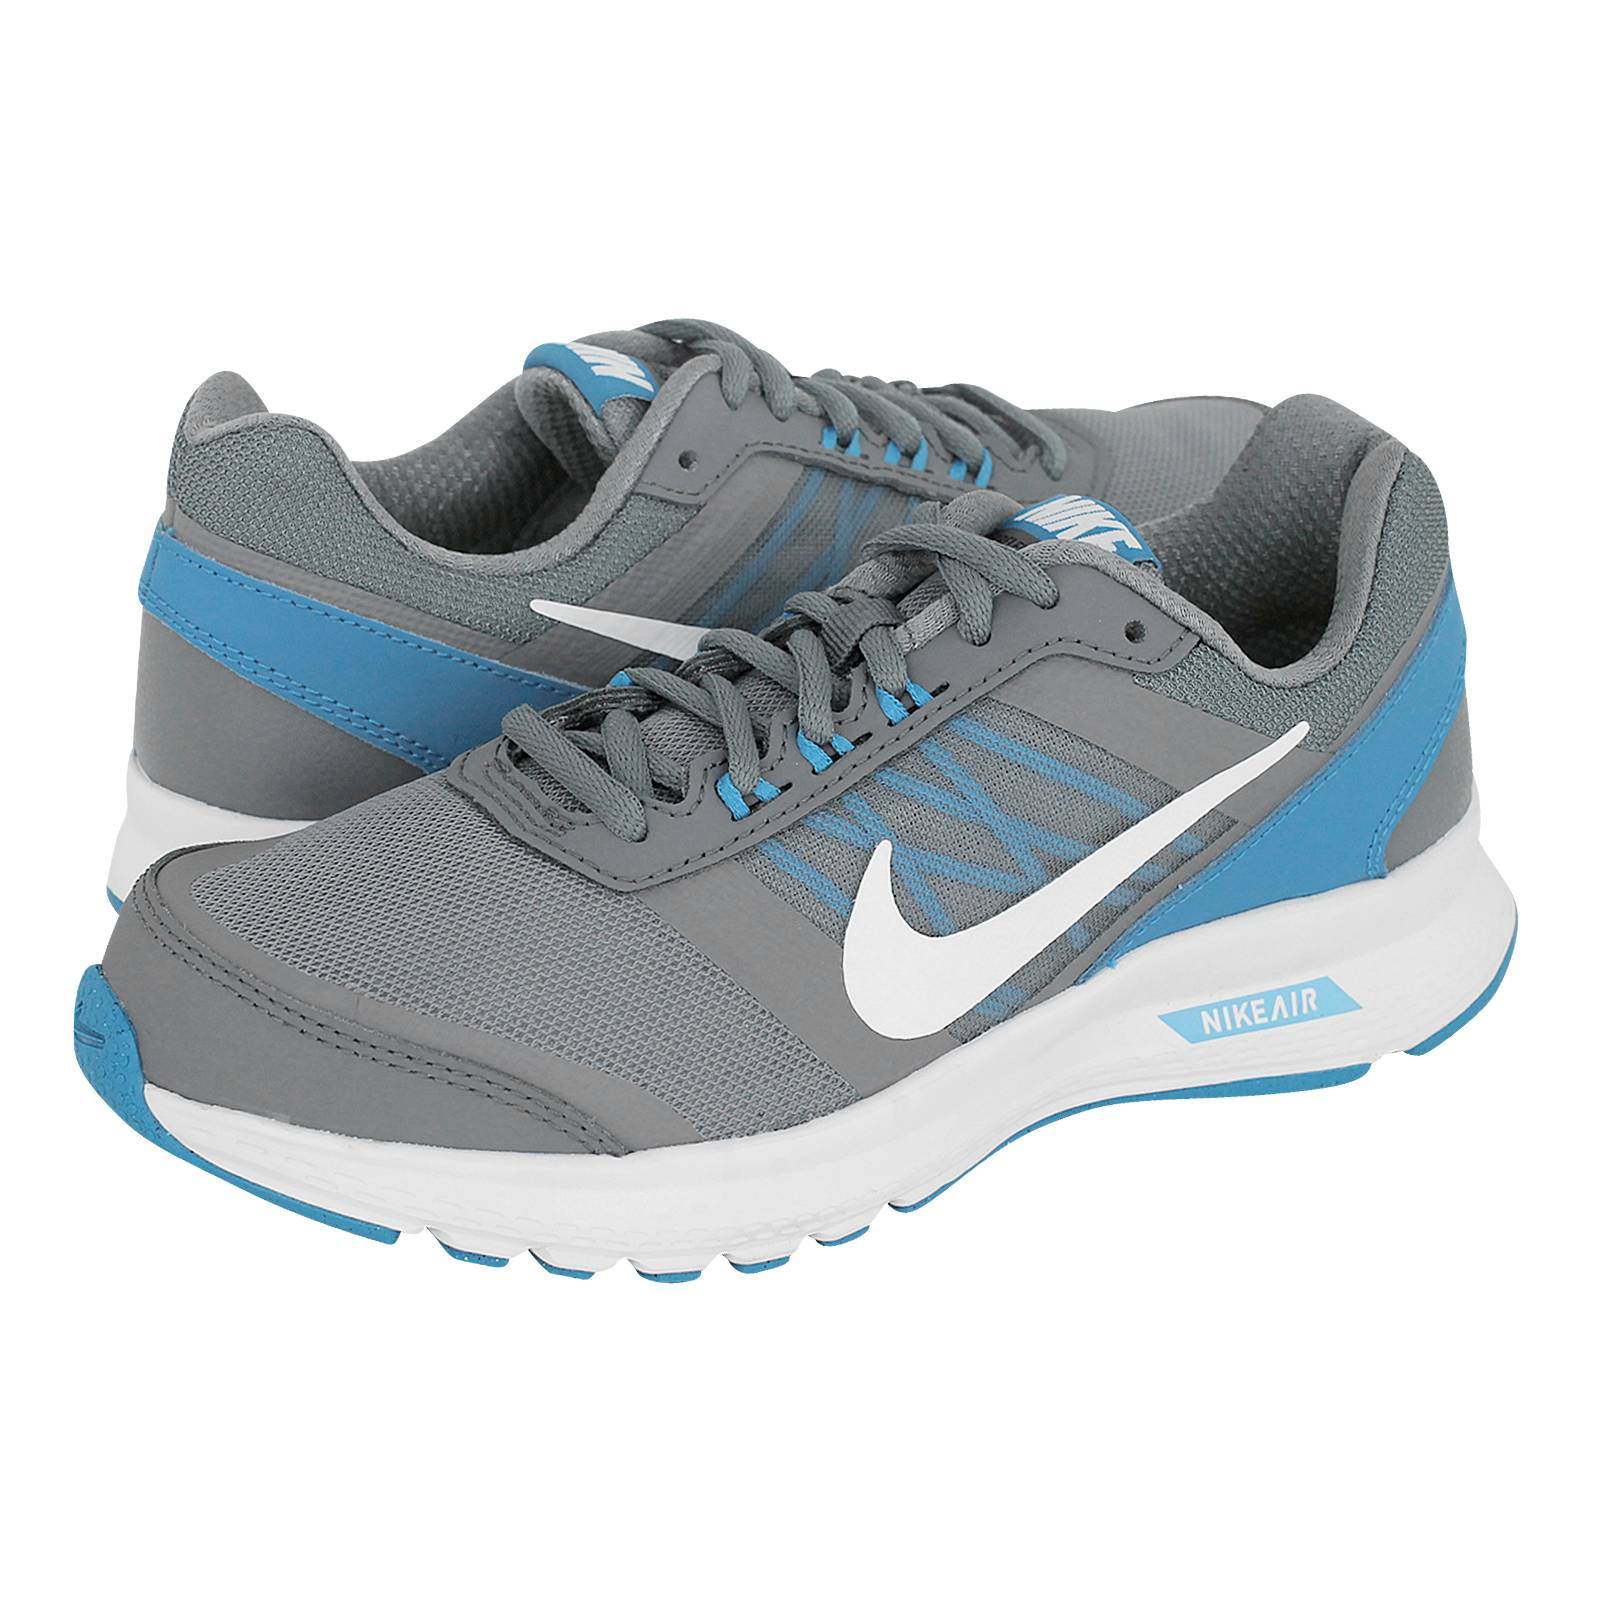 75eaba367d19 Air Relentless 5 - Nike Women s athletic shoes made of fabric and ...